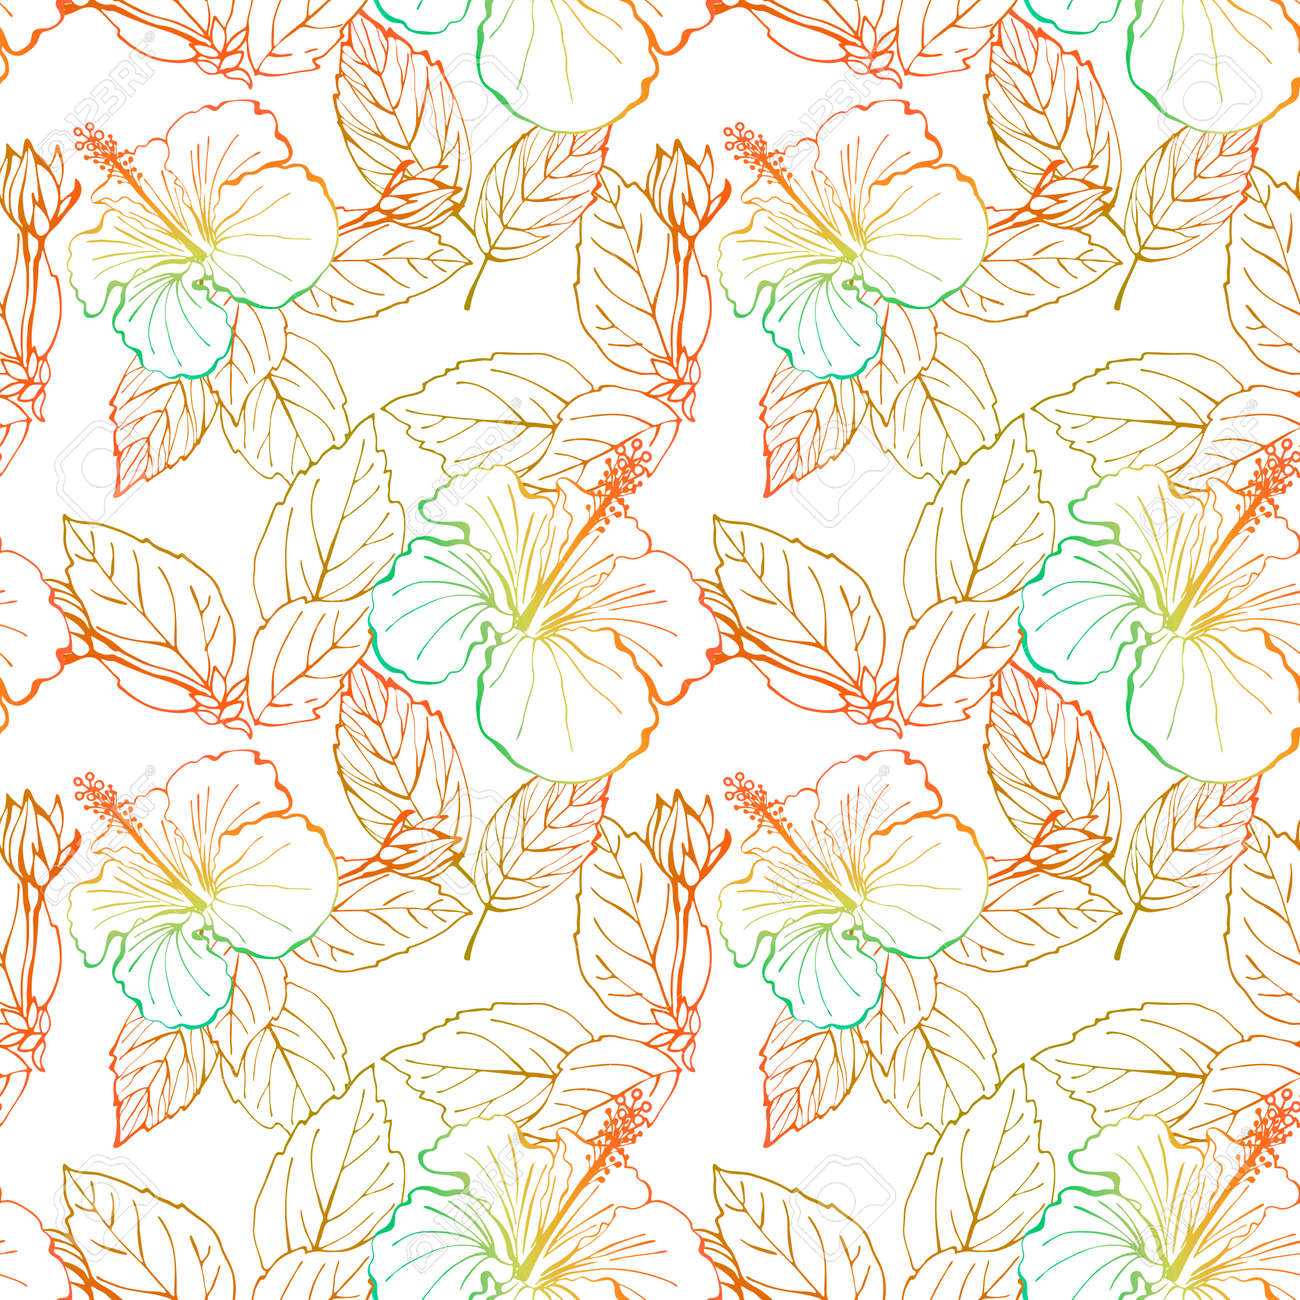 Hibiscus flower seamless pattern. Hand drawn sketch style. Line art. Mallow Chinese Rose. Herbal tea. Hawaii. Tropical background for paper, textile, wrapping and wallpaper. - 169116820